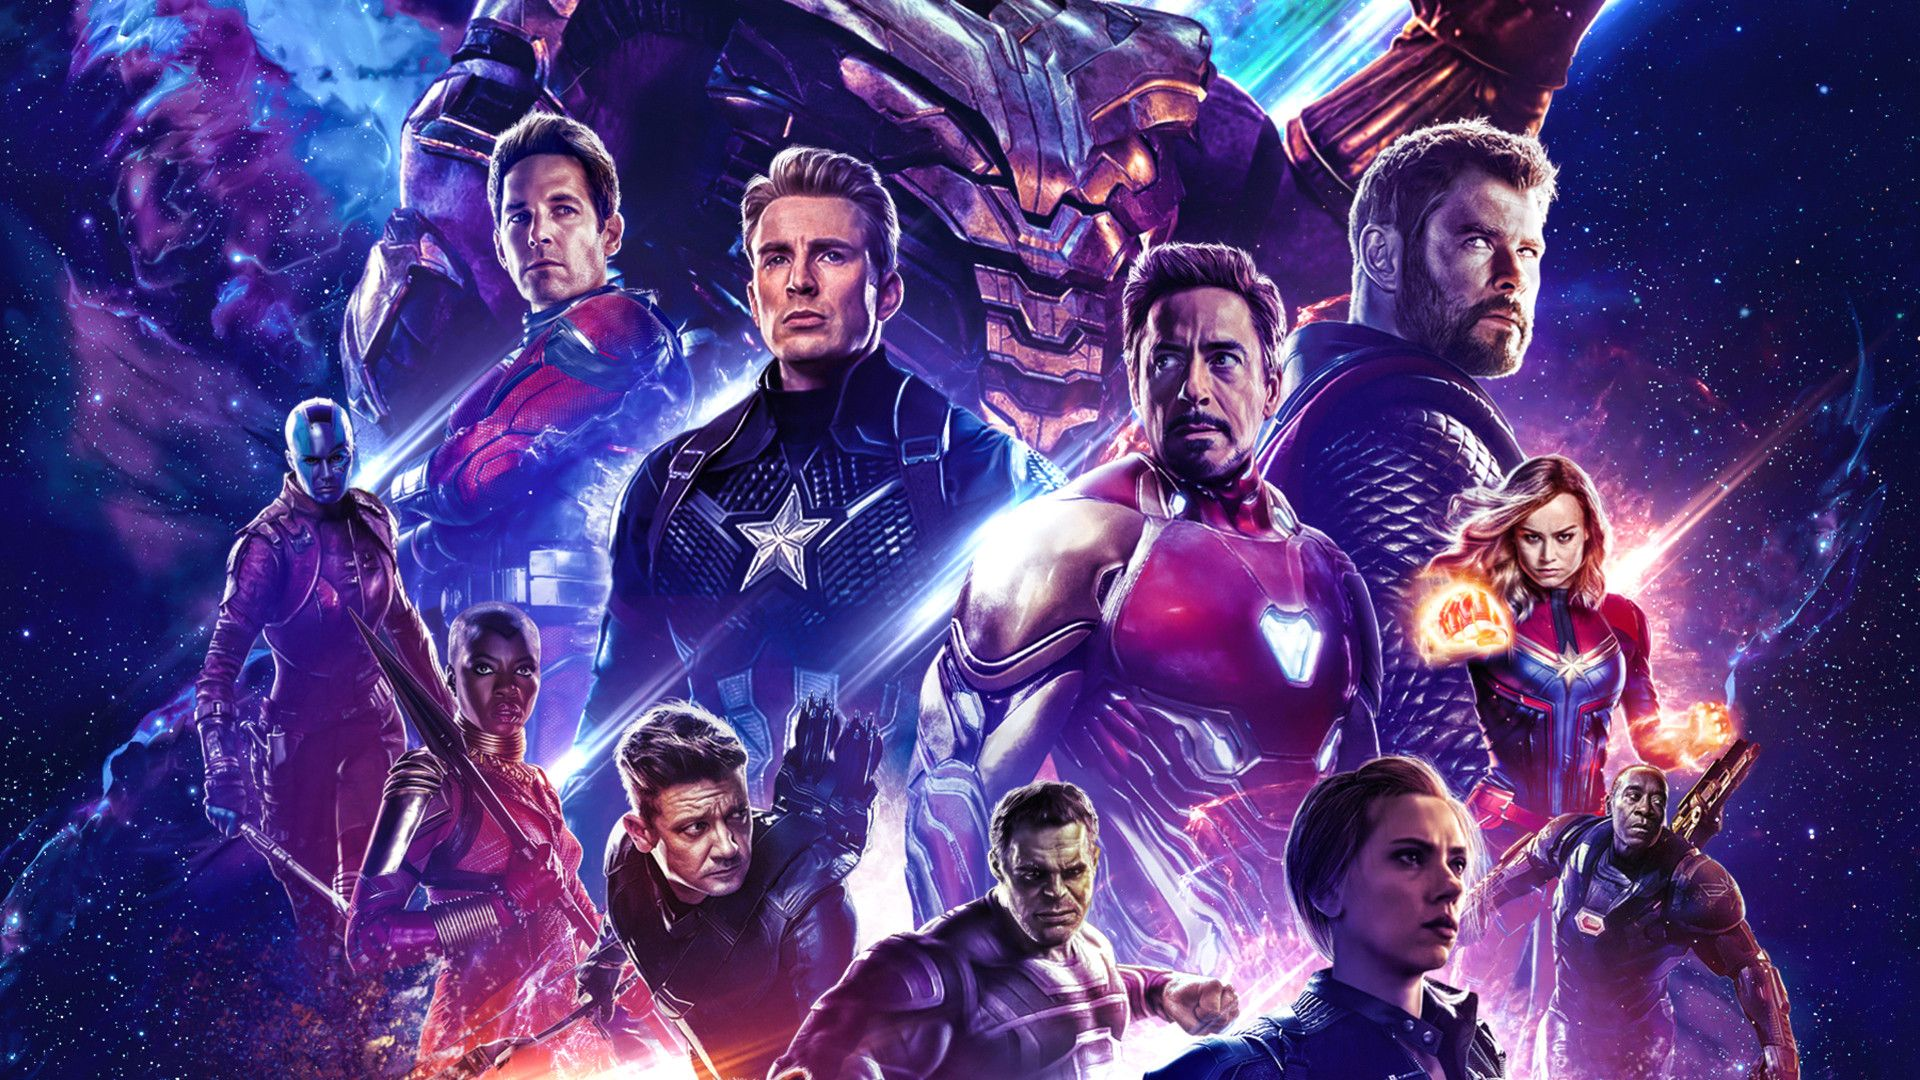 Awesome Avengers Endgame Amp Infinity War Wallpapers 1920 X 1080p Avengers Wallpaper Avengers Marvel Avengers